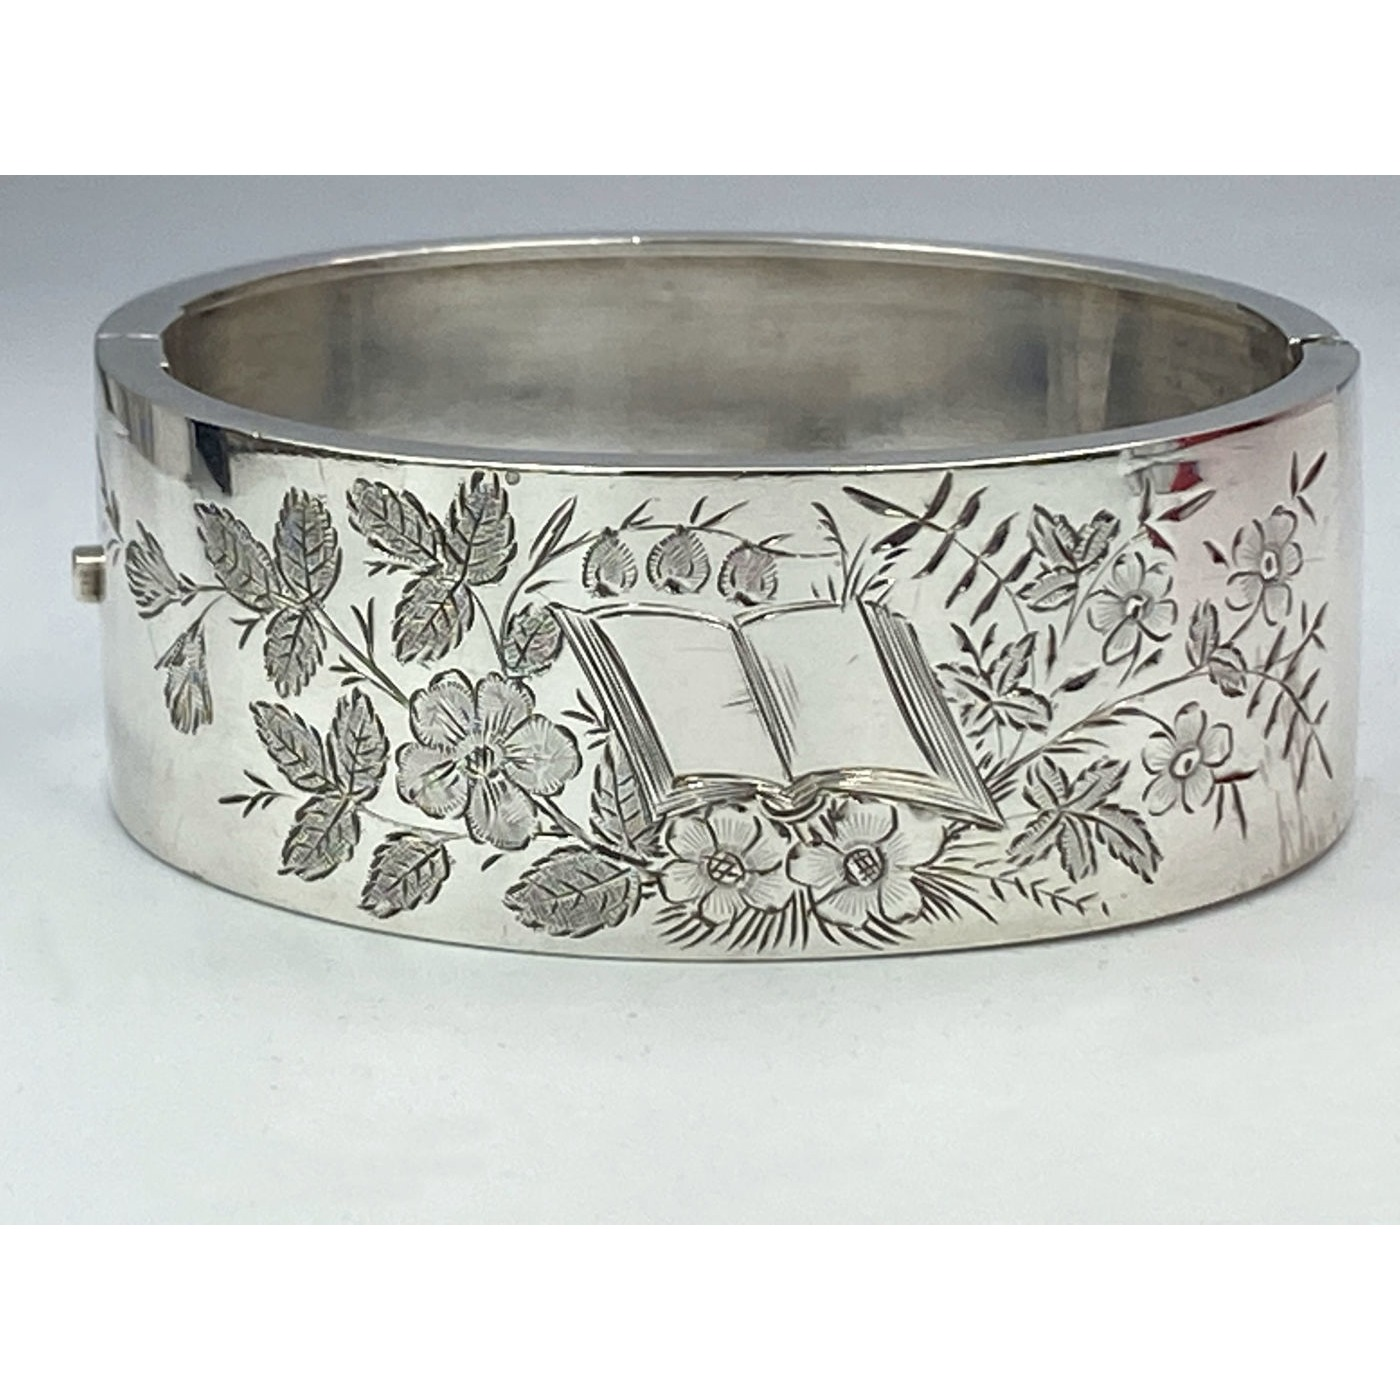 Highly Unusual Engraved Book Antique English Silver Bangle